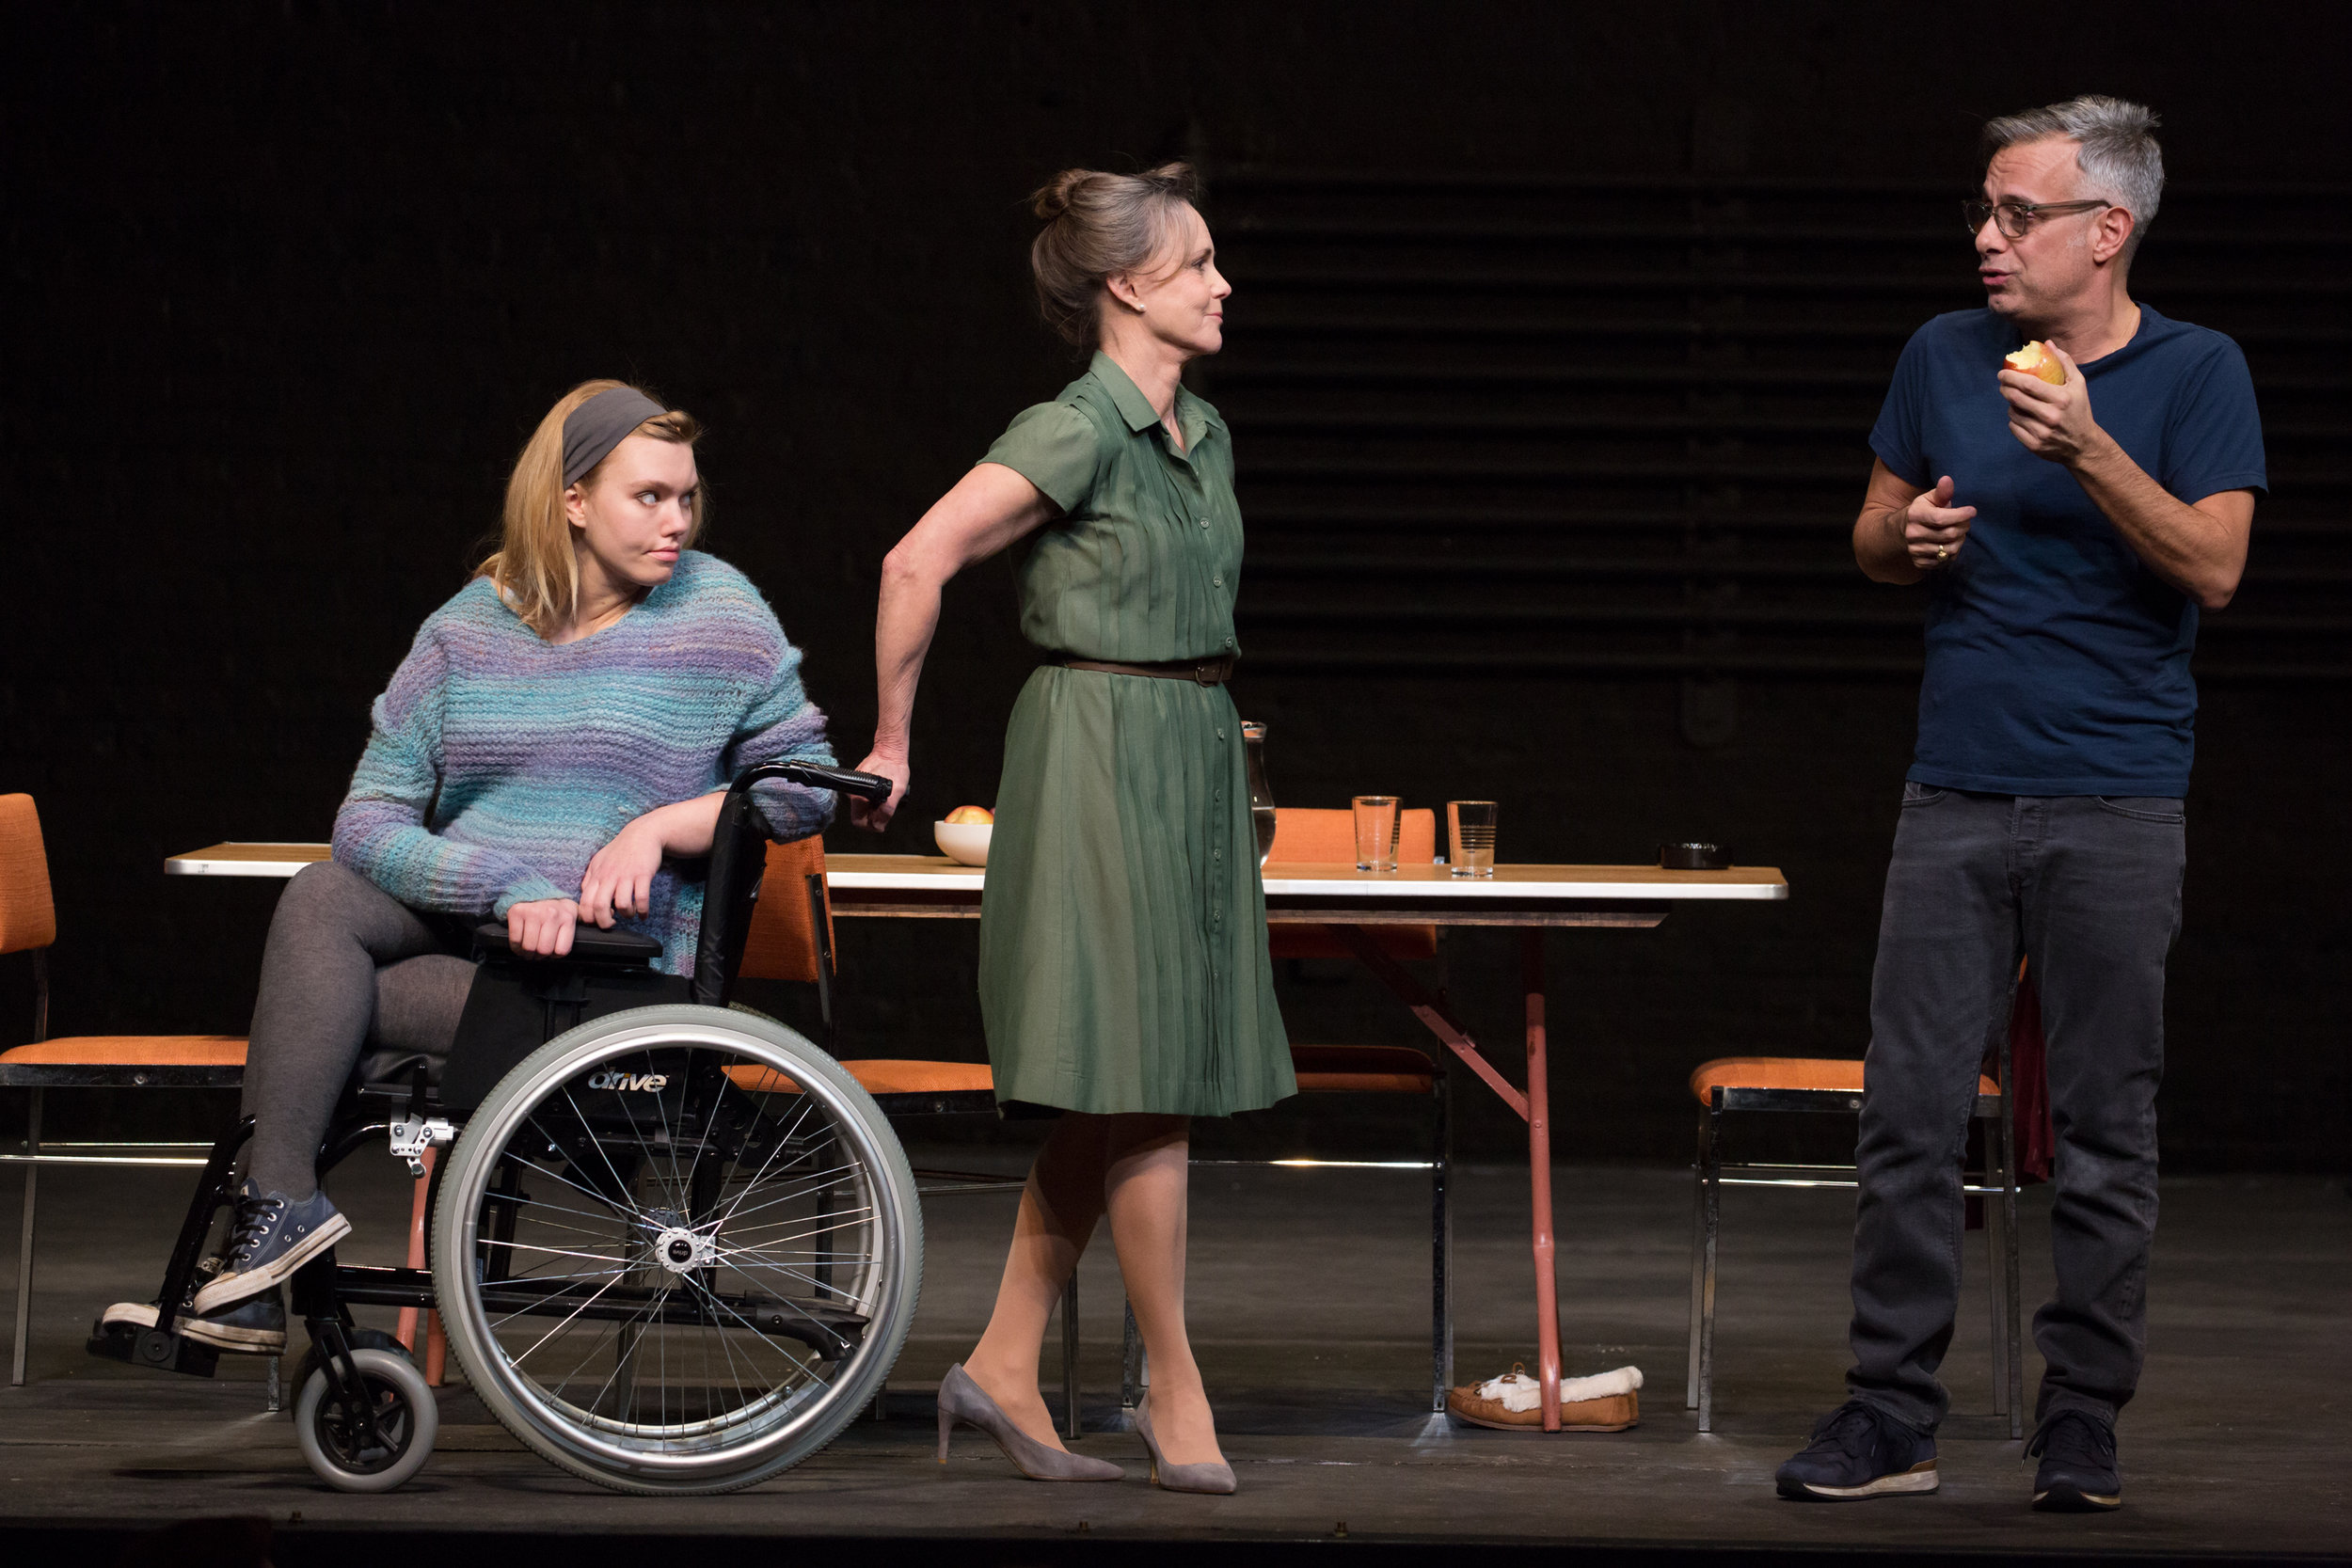 Madison-Ferris-Sally-Field-and-Joe-Mantello-in-The-Glass-Menagerie-Photo-by-Julieta-Cervantes.jpg